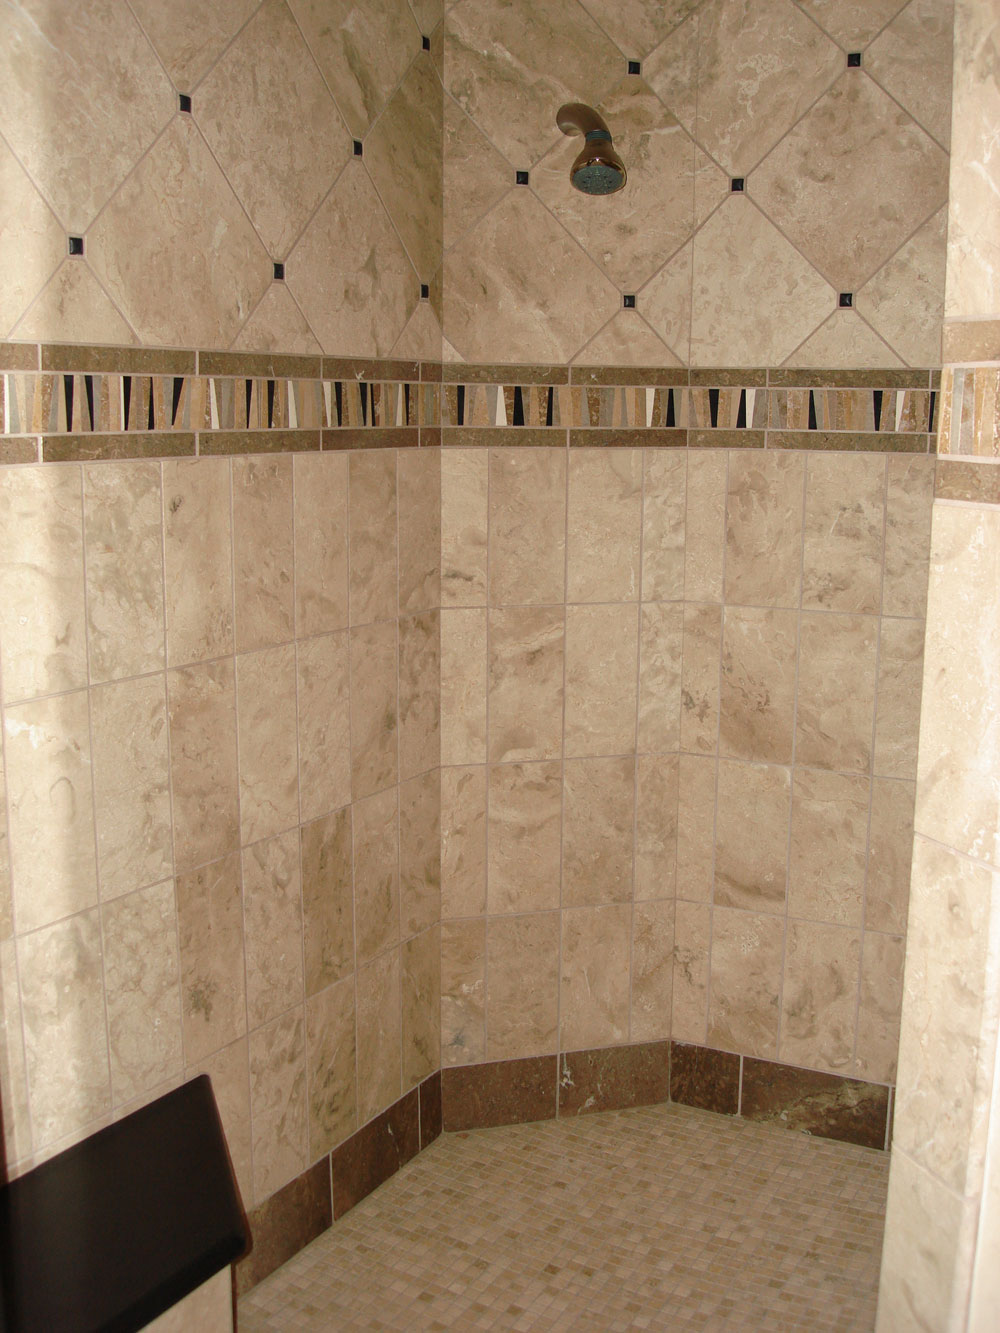 20 Cool Ideas Travertine Tile For Shower Walls With Pictures: tile bathroom